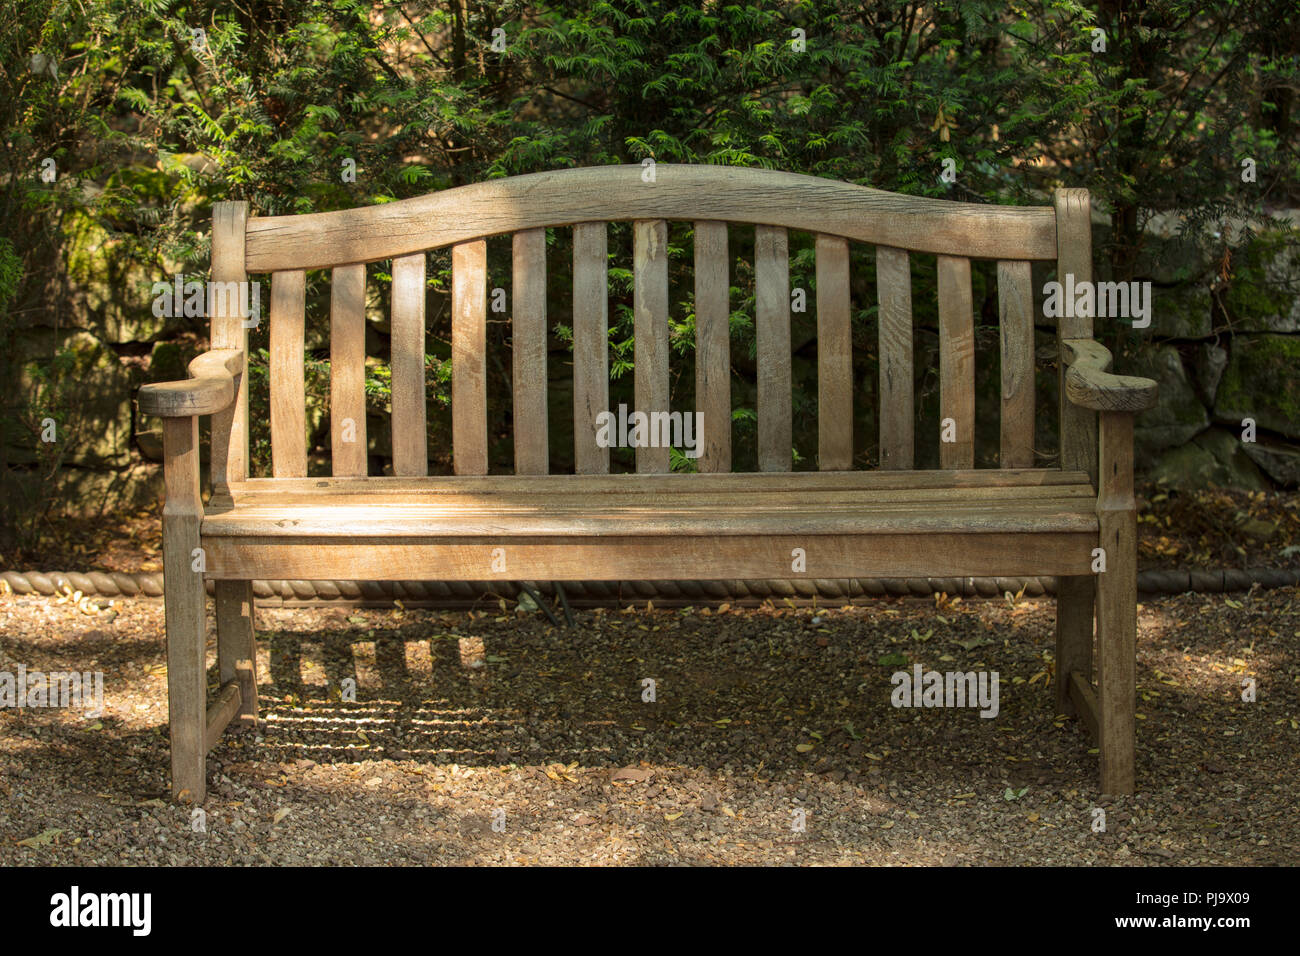 Hardwood garden bench feature and focal point in an inspirational garden design. Handmade outdoor furniture of craftmanship as ornament and to be used - Stock Image